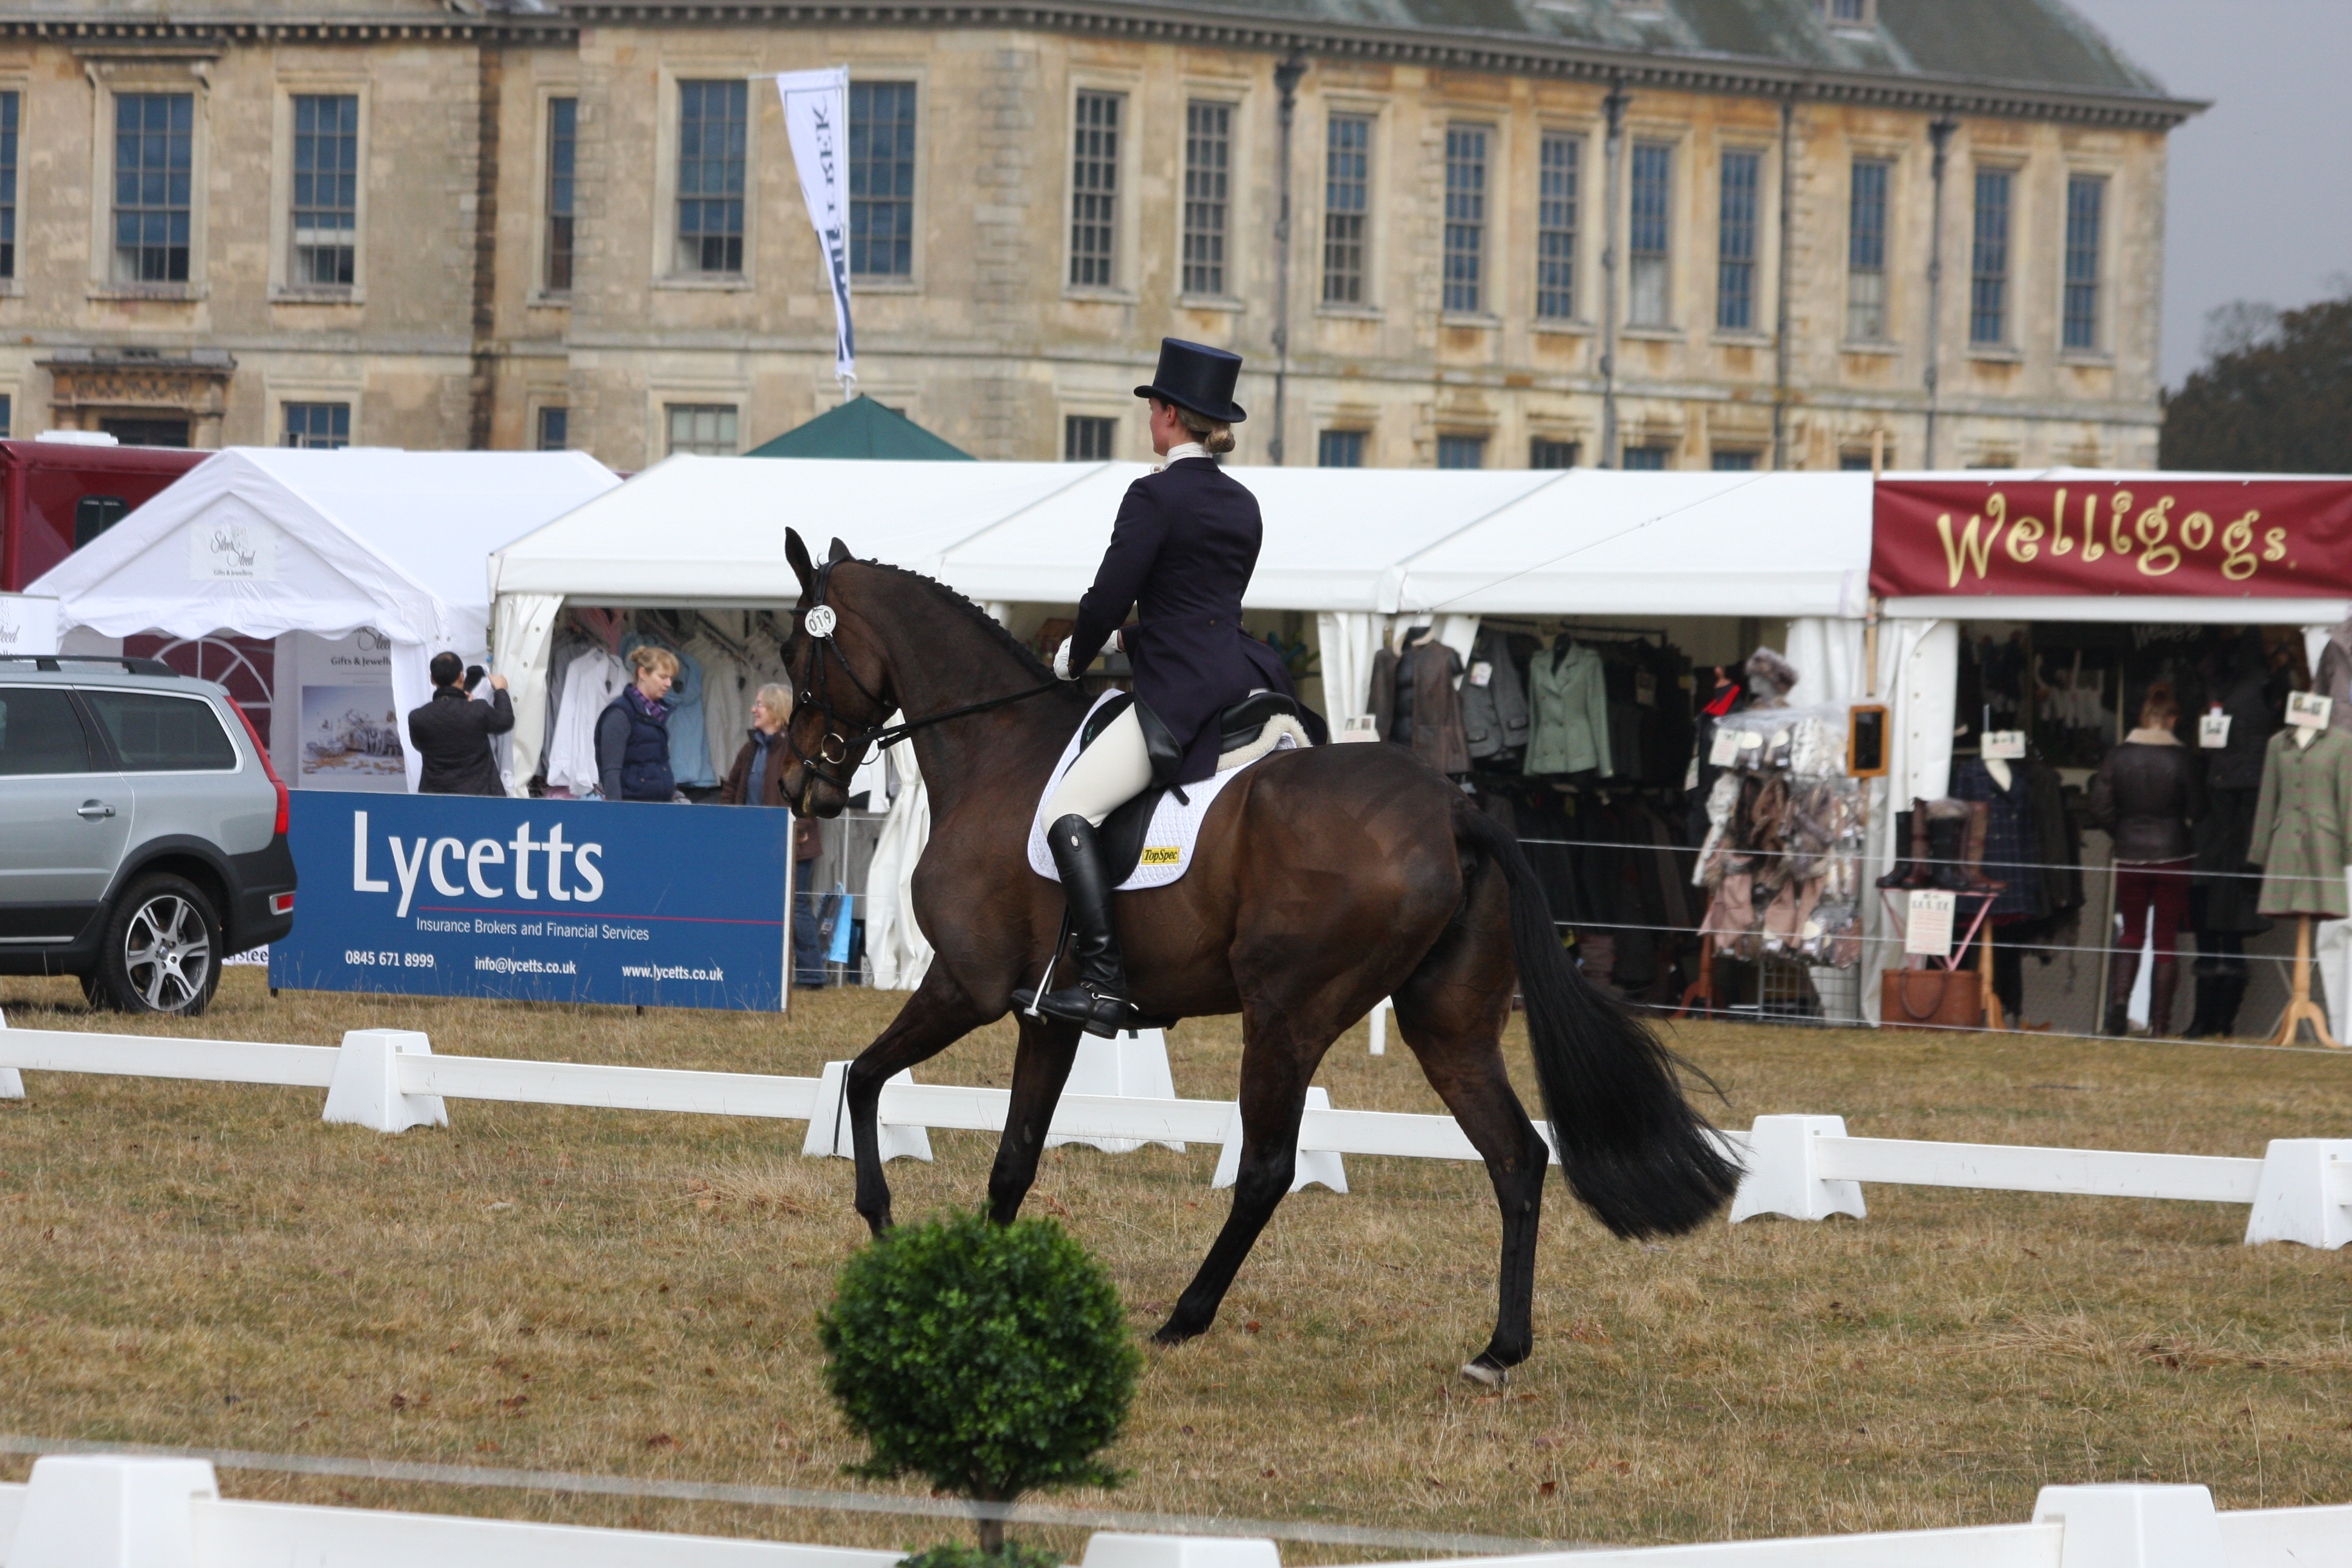 IMG 9101 - Beautiful Belton hosts Horse Trials